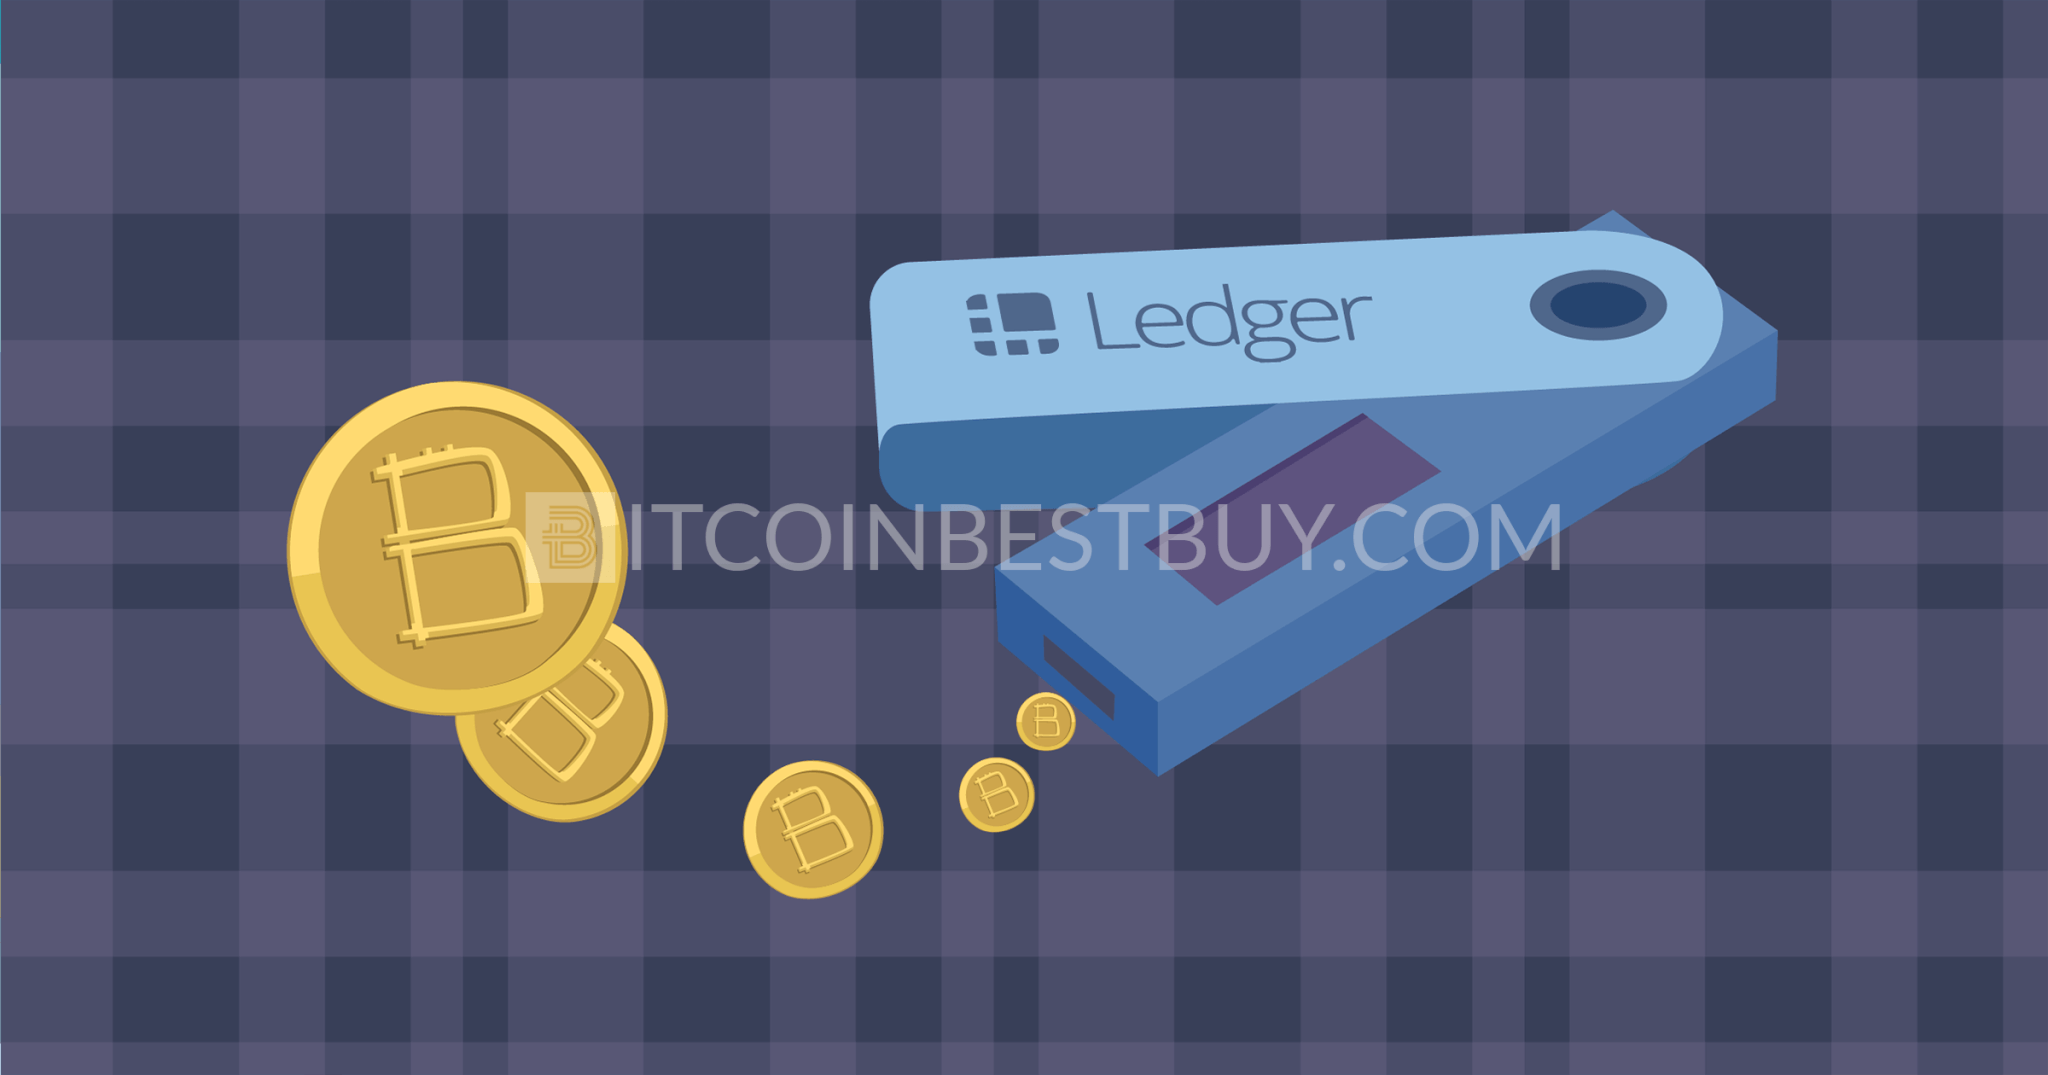 Being An HD Wallet Ledger Nano S Gives A Good Value For The Price Tag It Has And This Article Will Show You How To Use Said Make Most Of